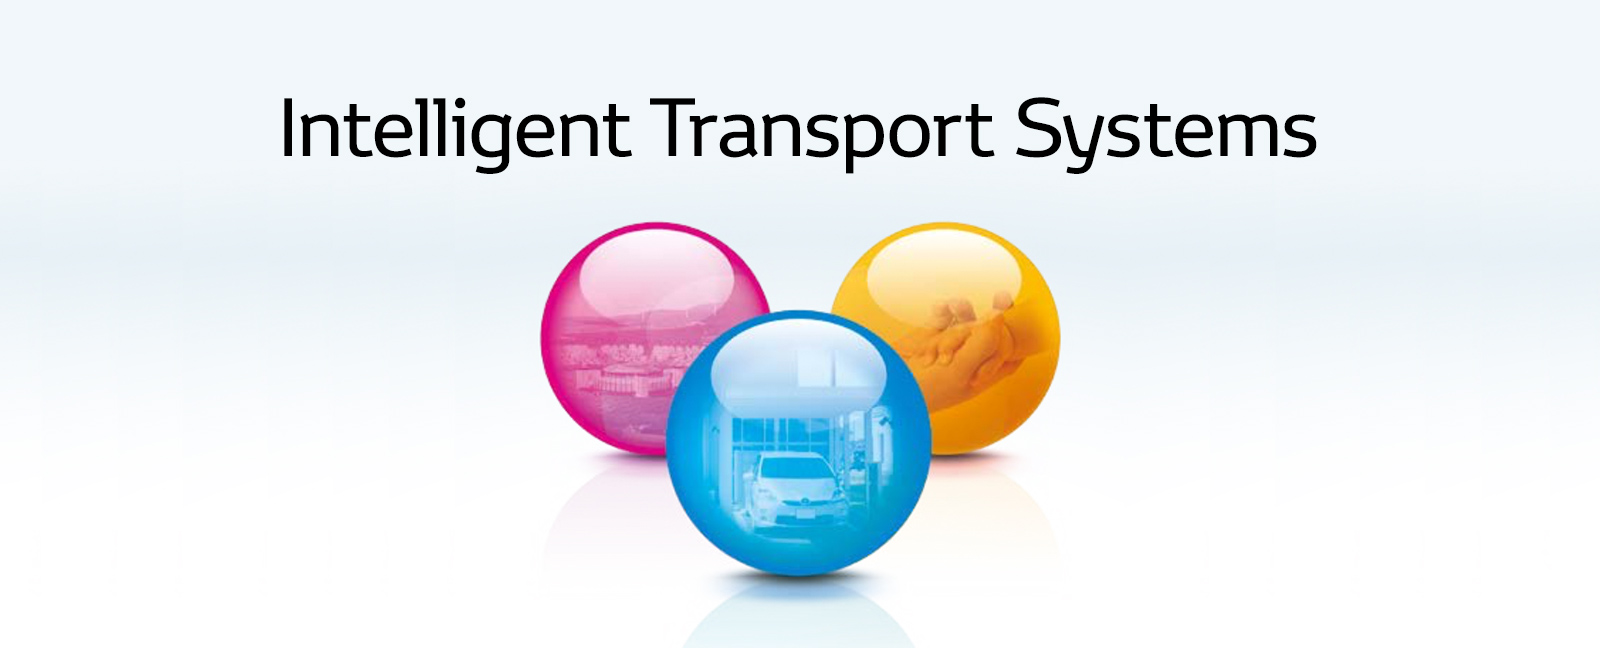 Intelligent Transport Systems